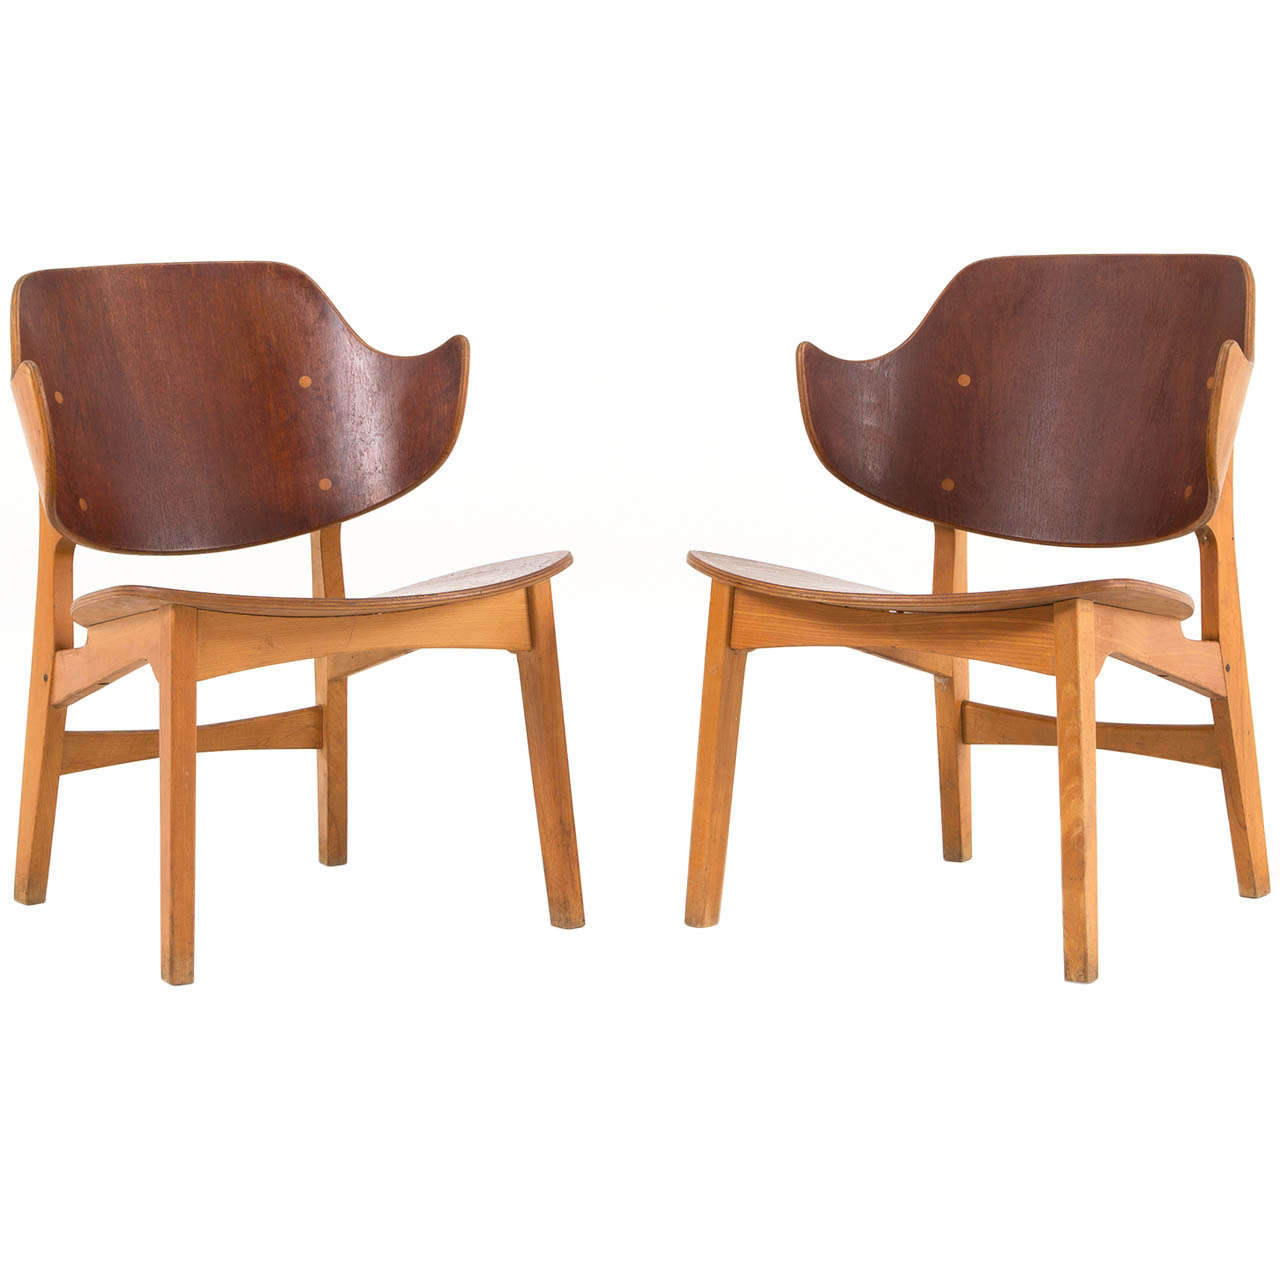 This sculptural pair of lounge chairs by ib kofod larsen is no longer - Pair Of Plywood Lounge Chairs By Ib Kofod Larsen 1